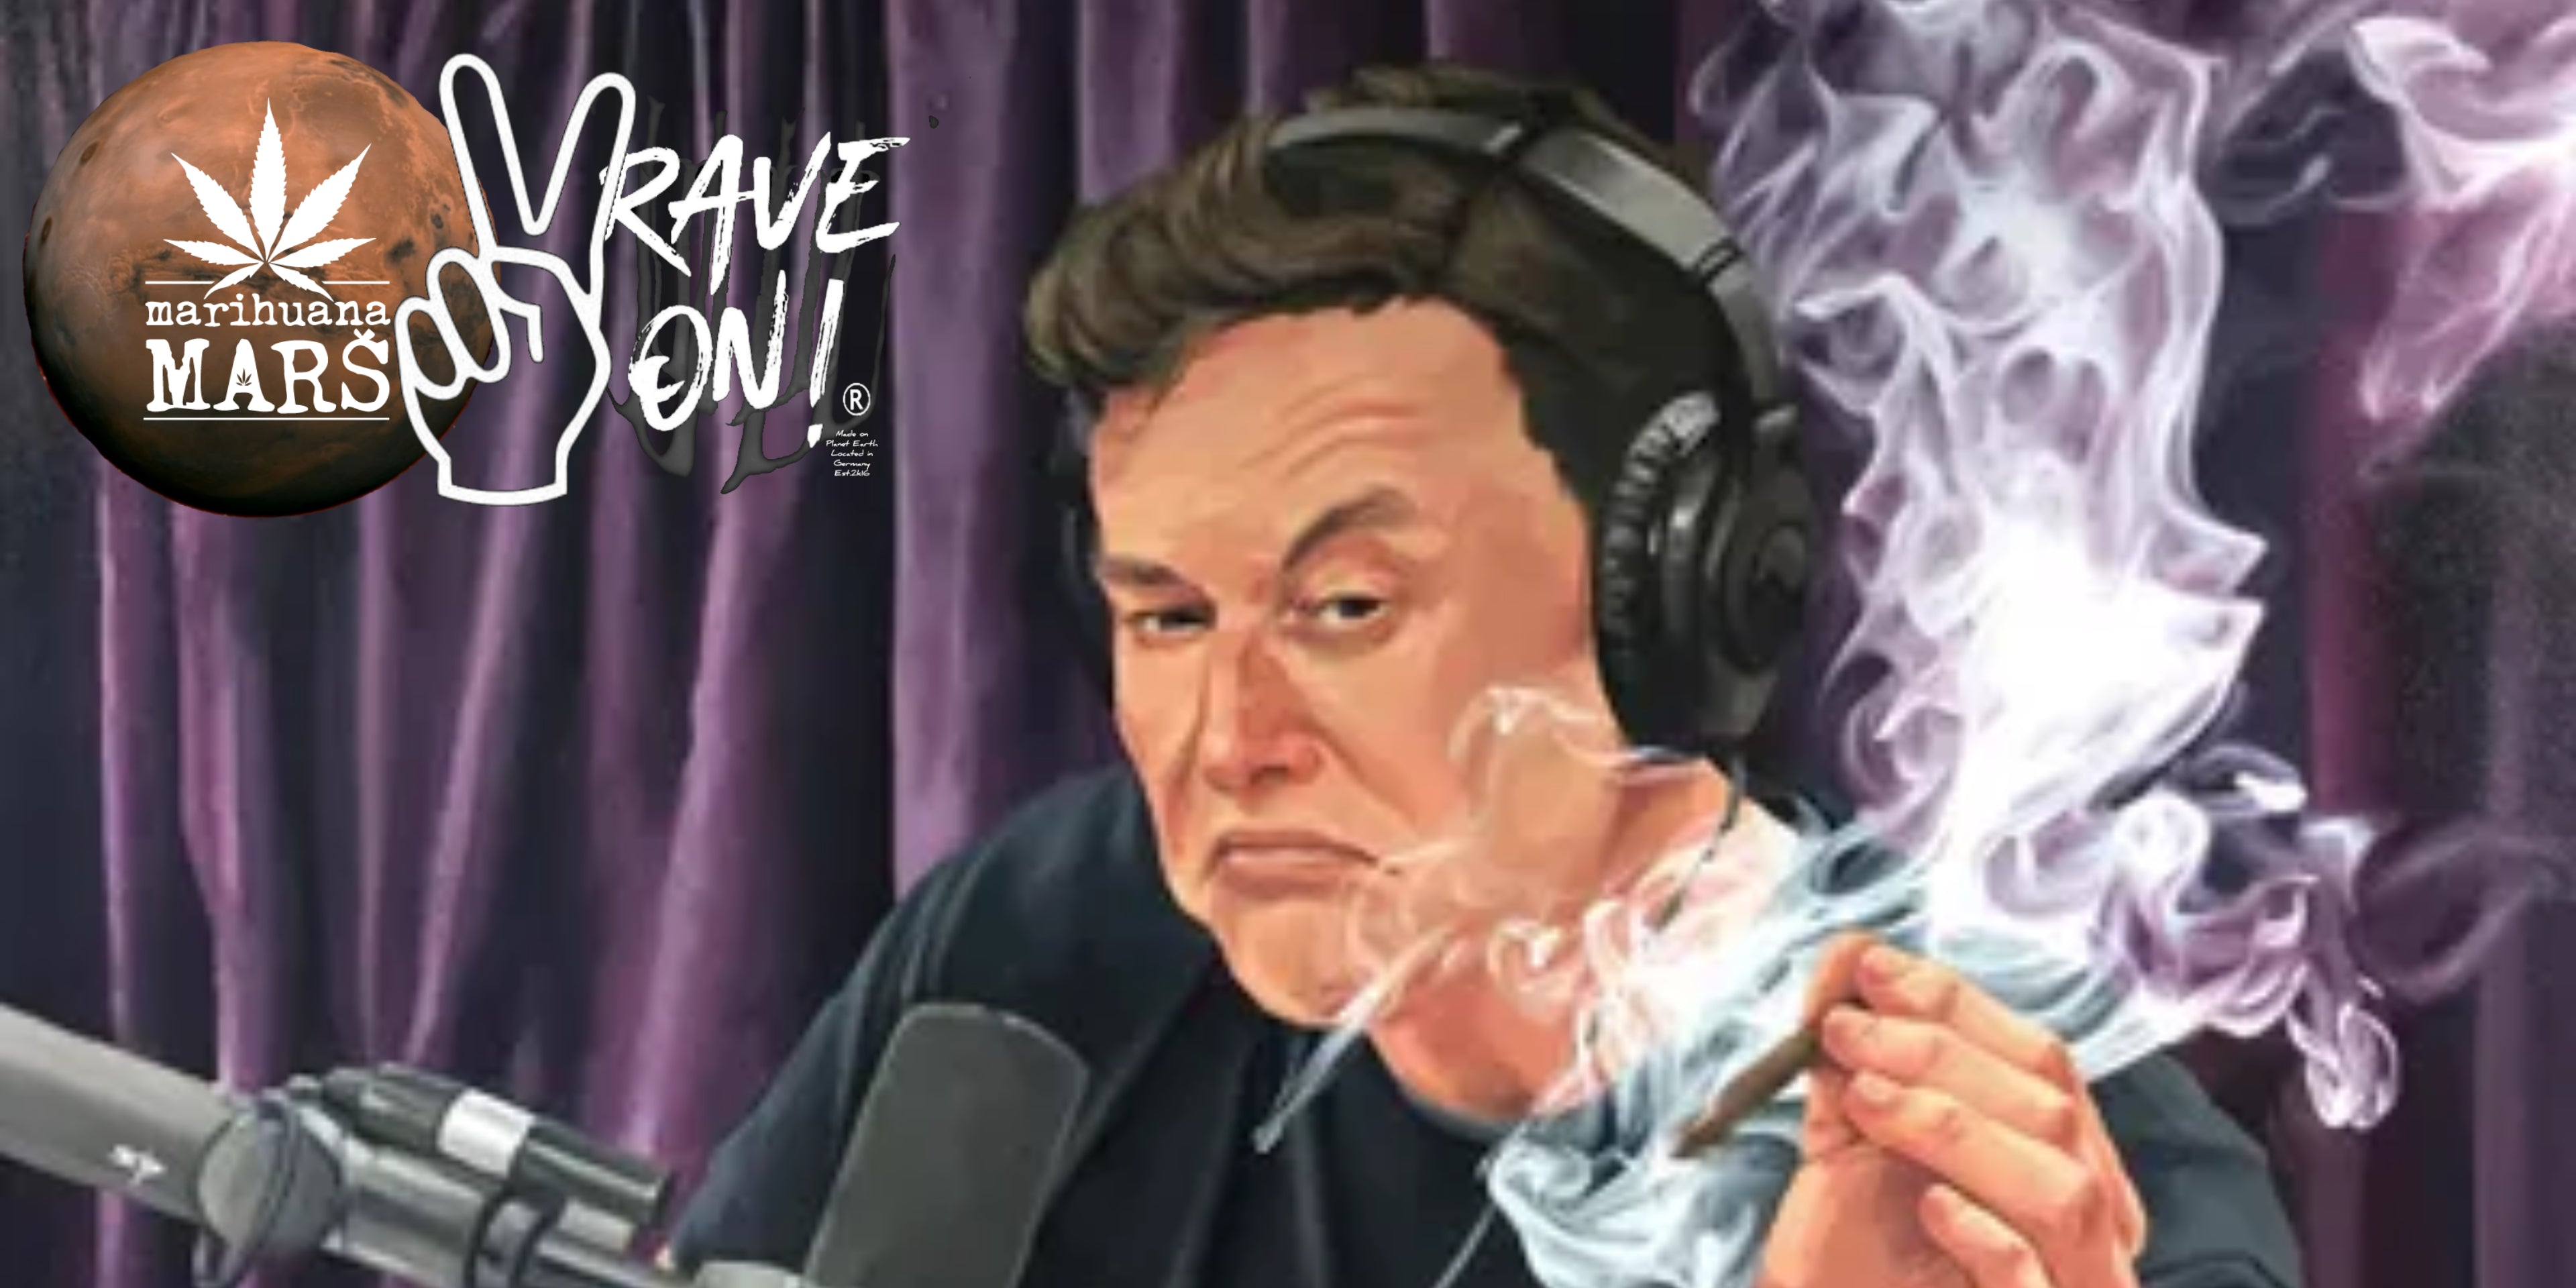 Elon Musk and Mars Weed from Rave On!®